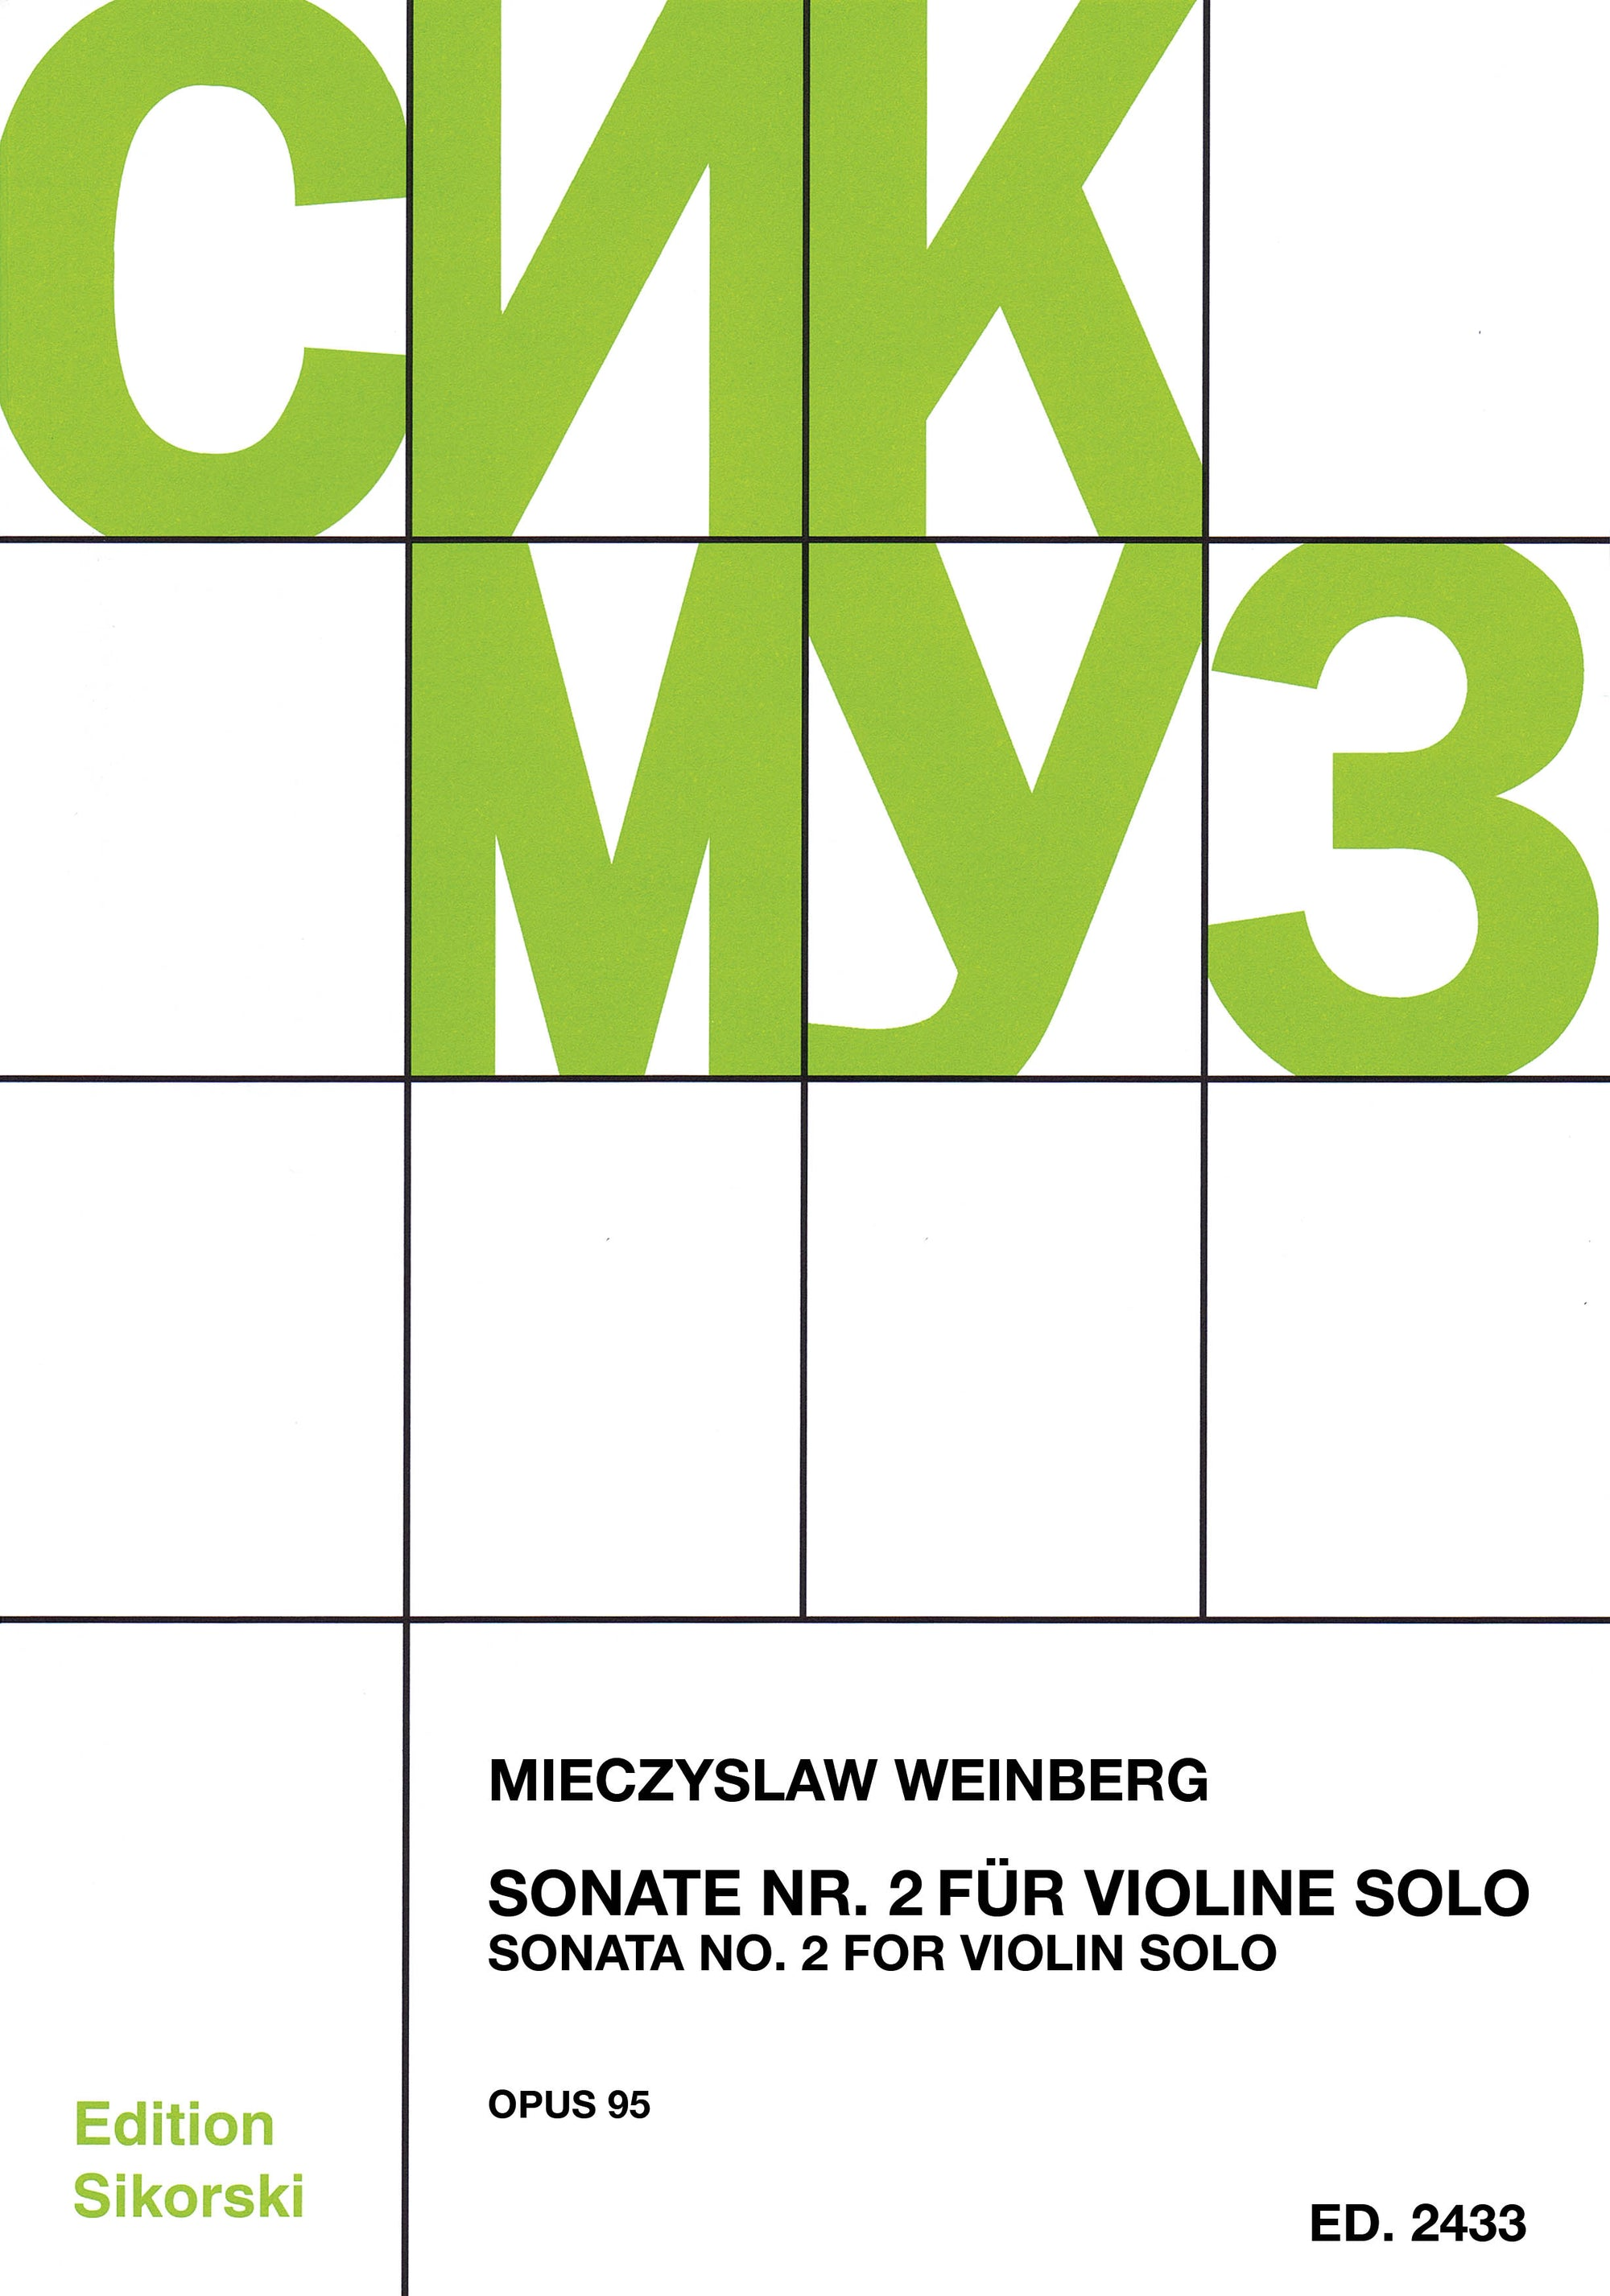 Weinberg: Sonata No. 2 for Solo Violin, Op. 95